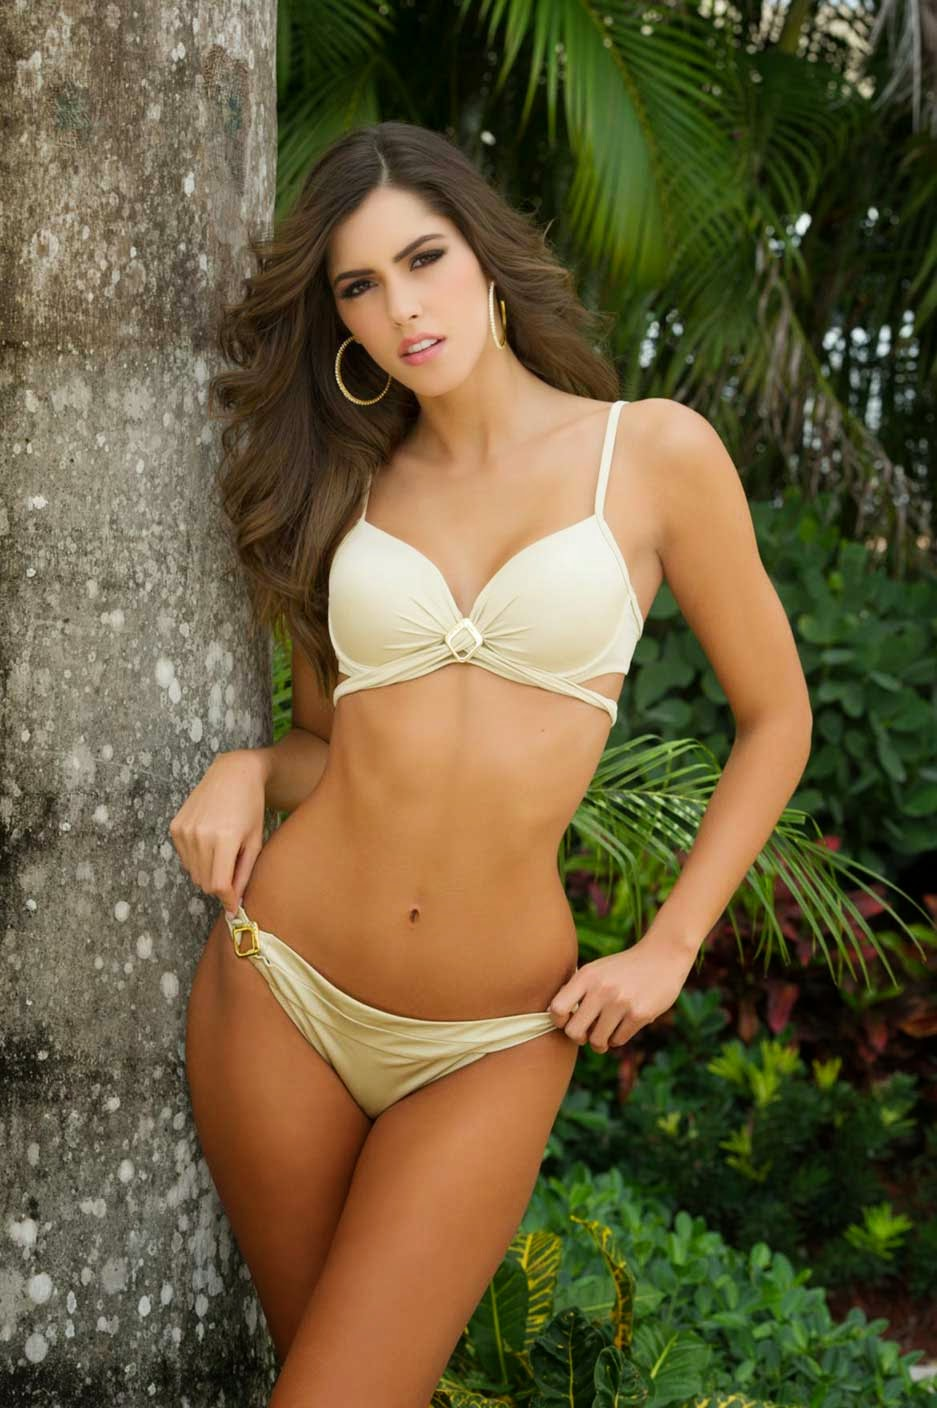 paulina vega wins miss universe 2014 | ink of life